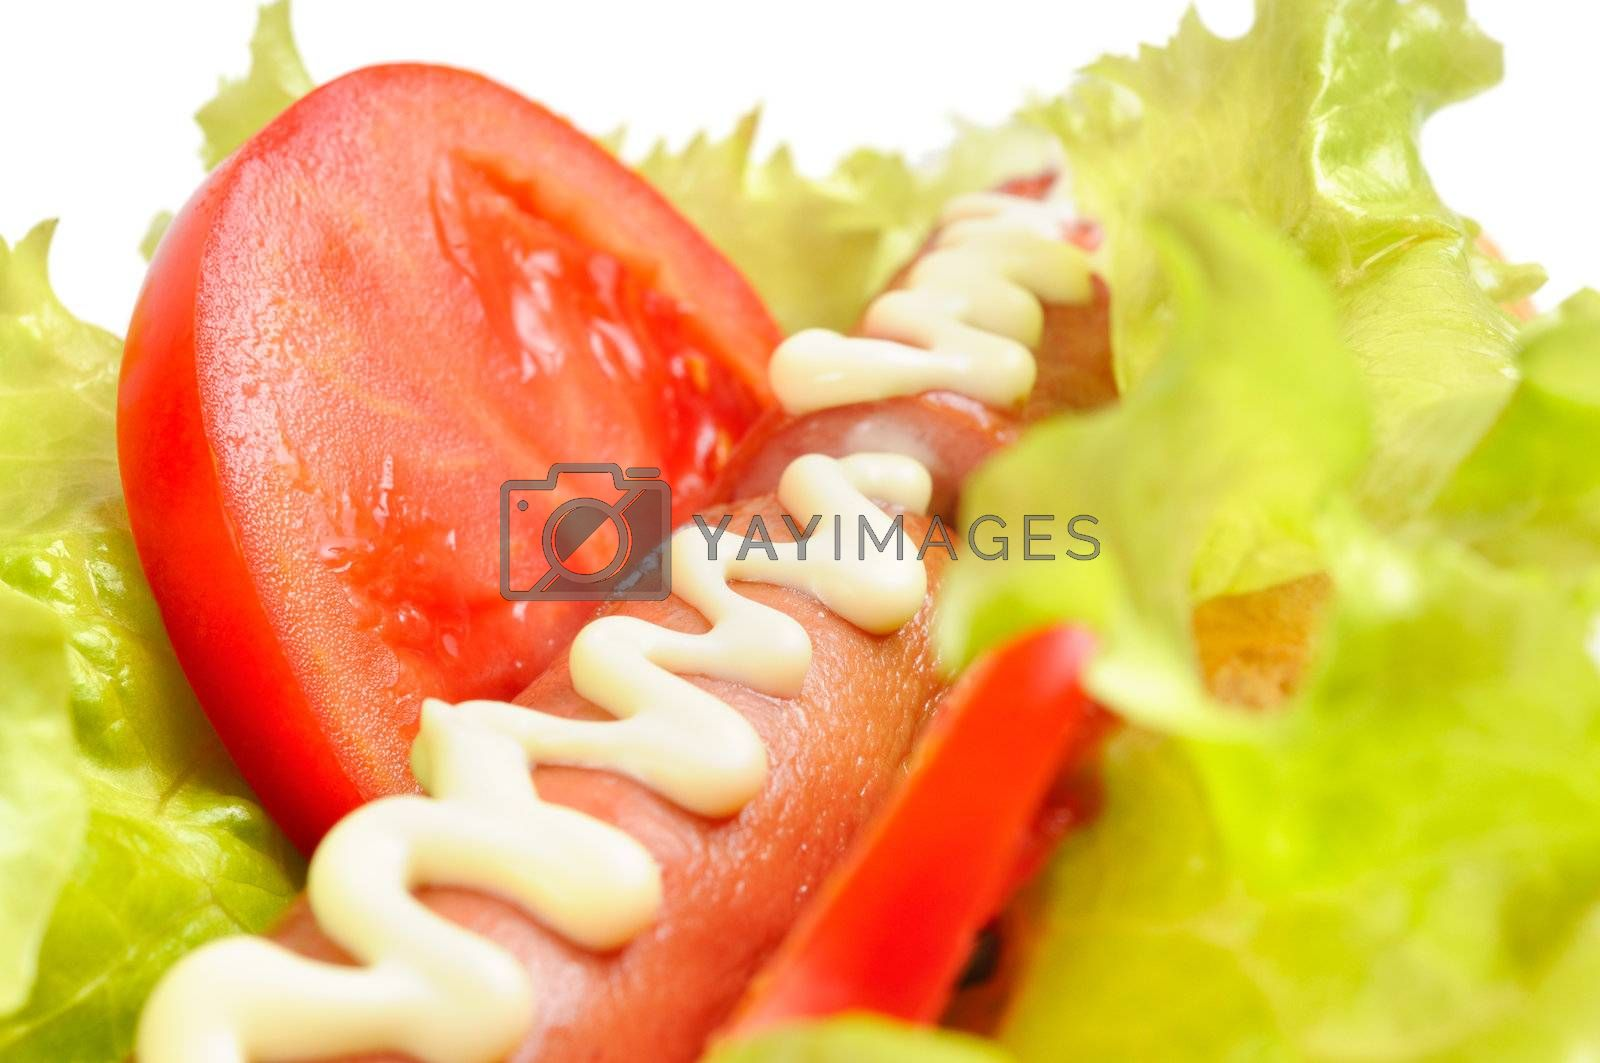 Tasty and delicious hotdog. Isolated on white.